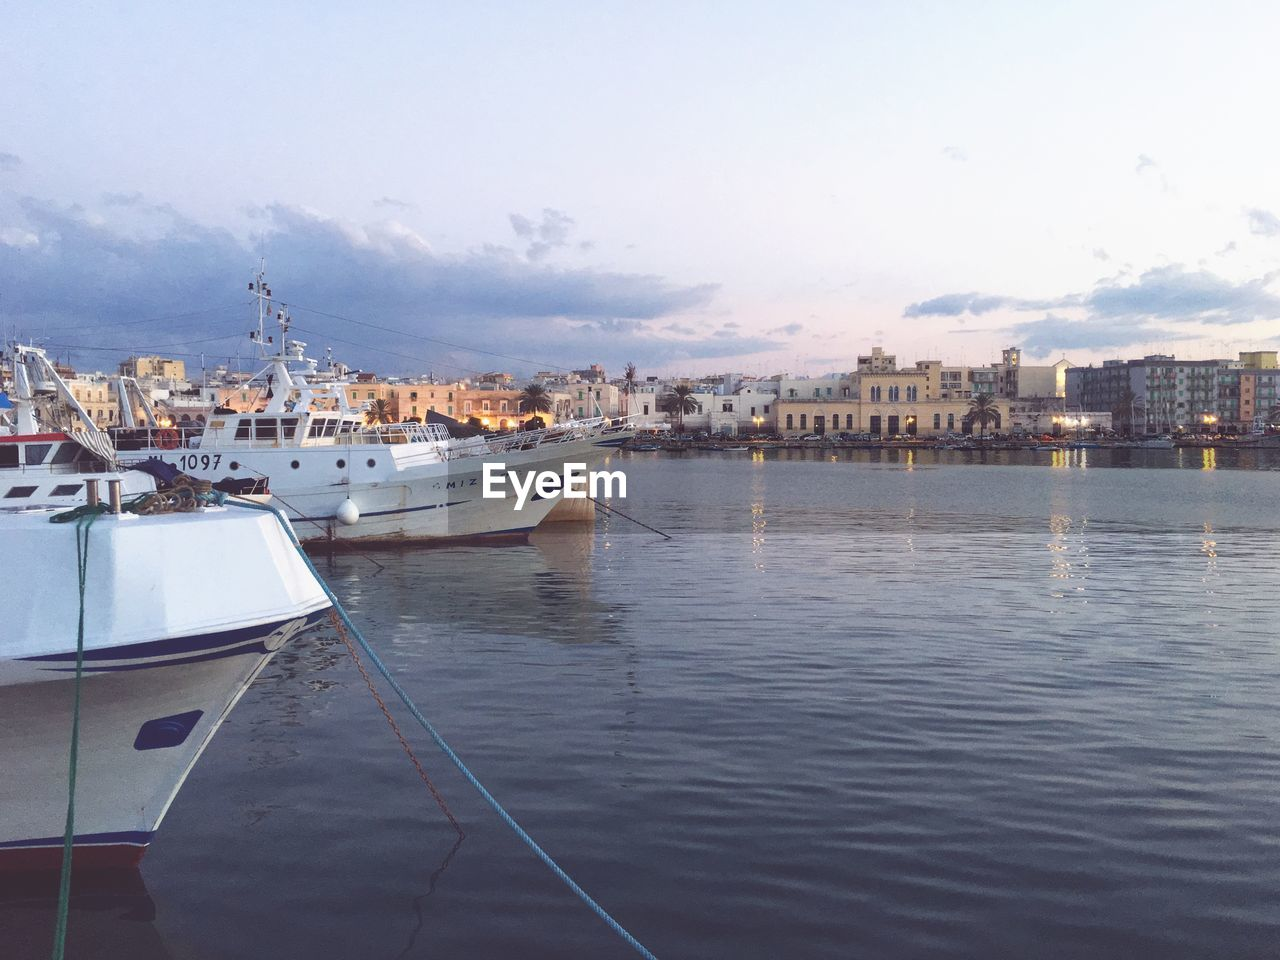 water, nautical vessel, building exterior, architecture, built structure, mode of transportation, transportation, city, sky, cloud - sky, nature, moored, sea, no people, building, harbor, waterfront, residential district, outdoors, cityscape, yacht, passenger craft, marina, cruise ship